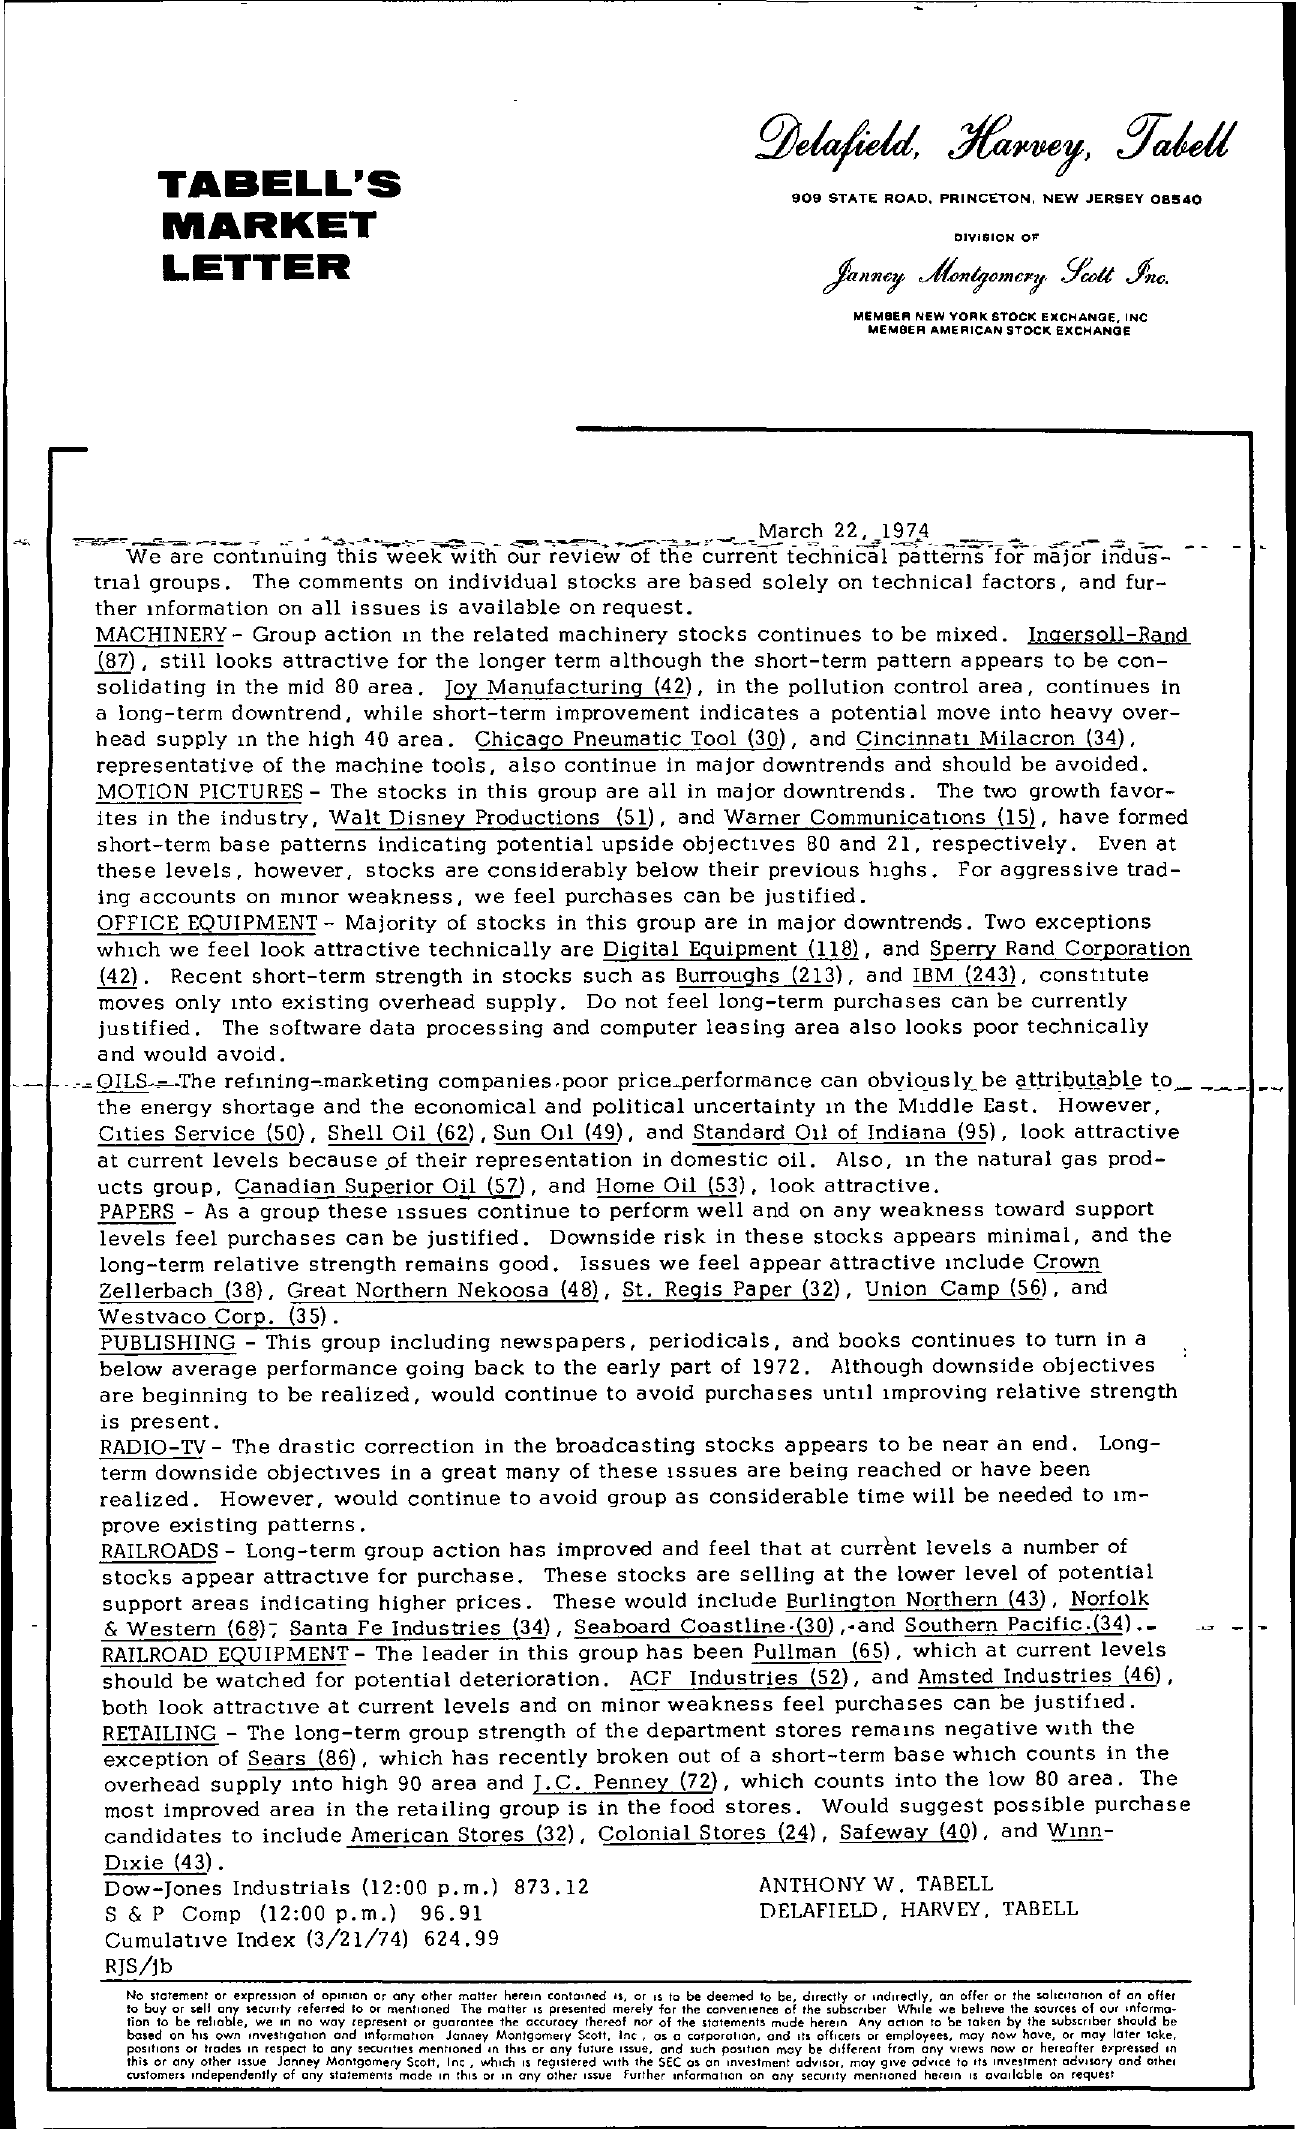 Tabell's Market Letter - March 22, 1974